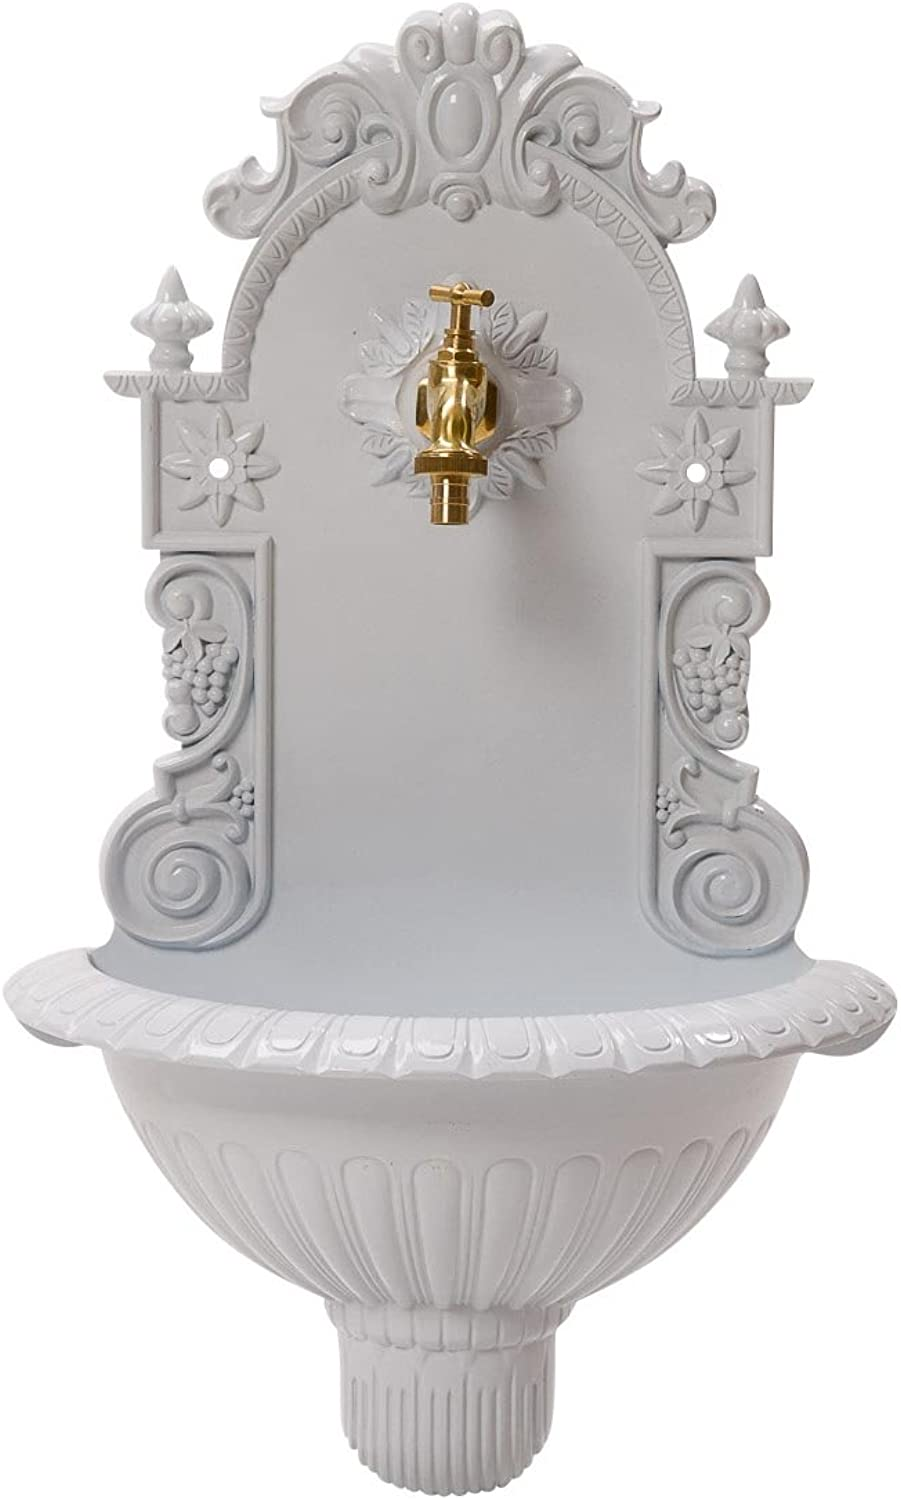 Basin, wine, wall fountain, garden, aluminium basin, antique style fountain, white